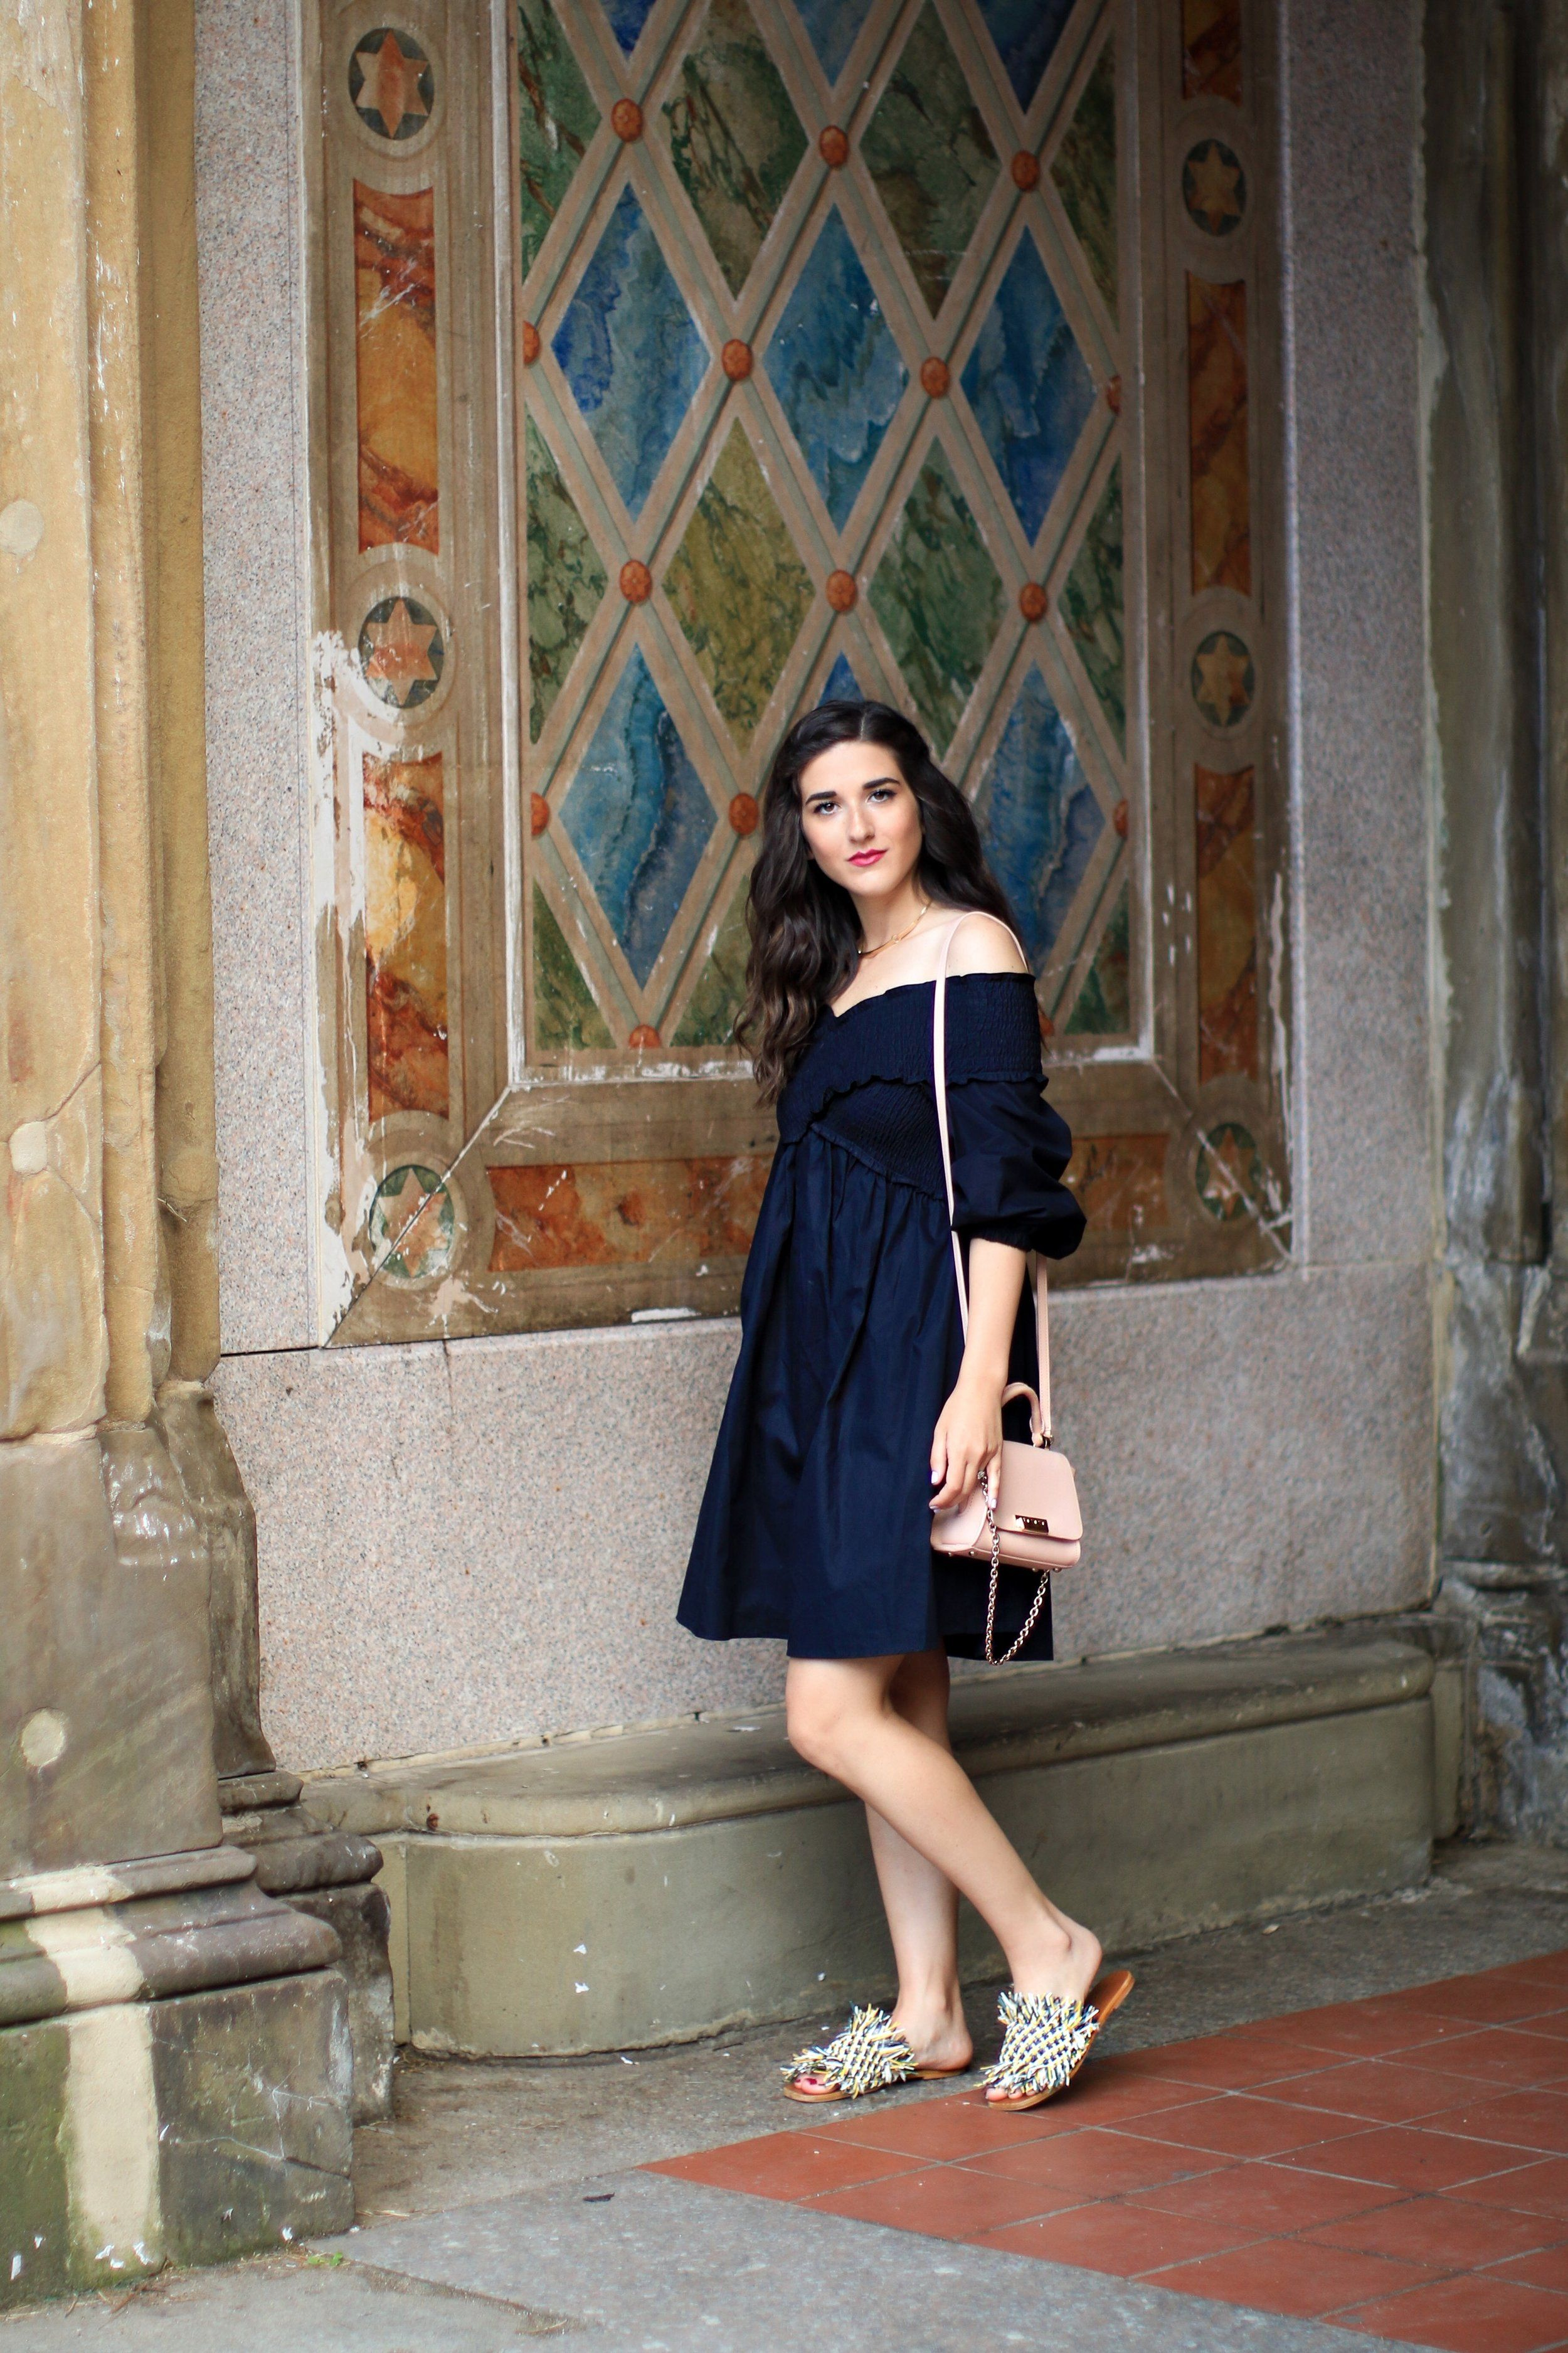 27 Blogging Tips For My 27th Birthday   Esther Santer Fashion Blog NYC Street Style Blogger Outfit OOTD Trendy Girl Women   Navy Dress Fringe Slides Pink Zac Posen Bag Cold Shoulders